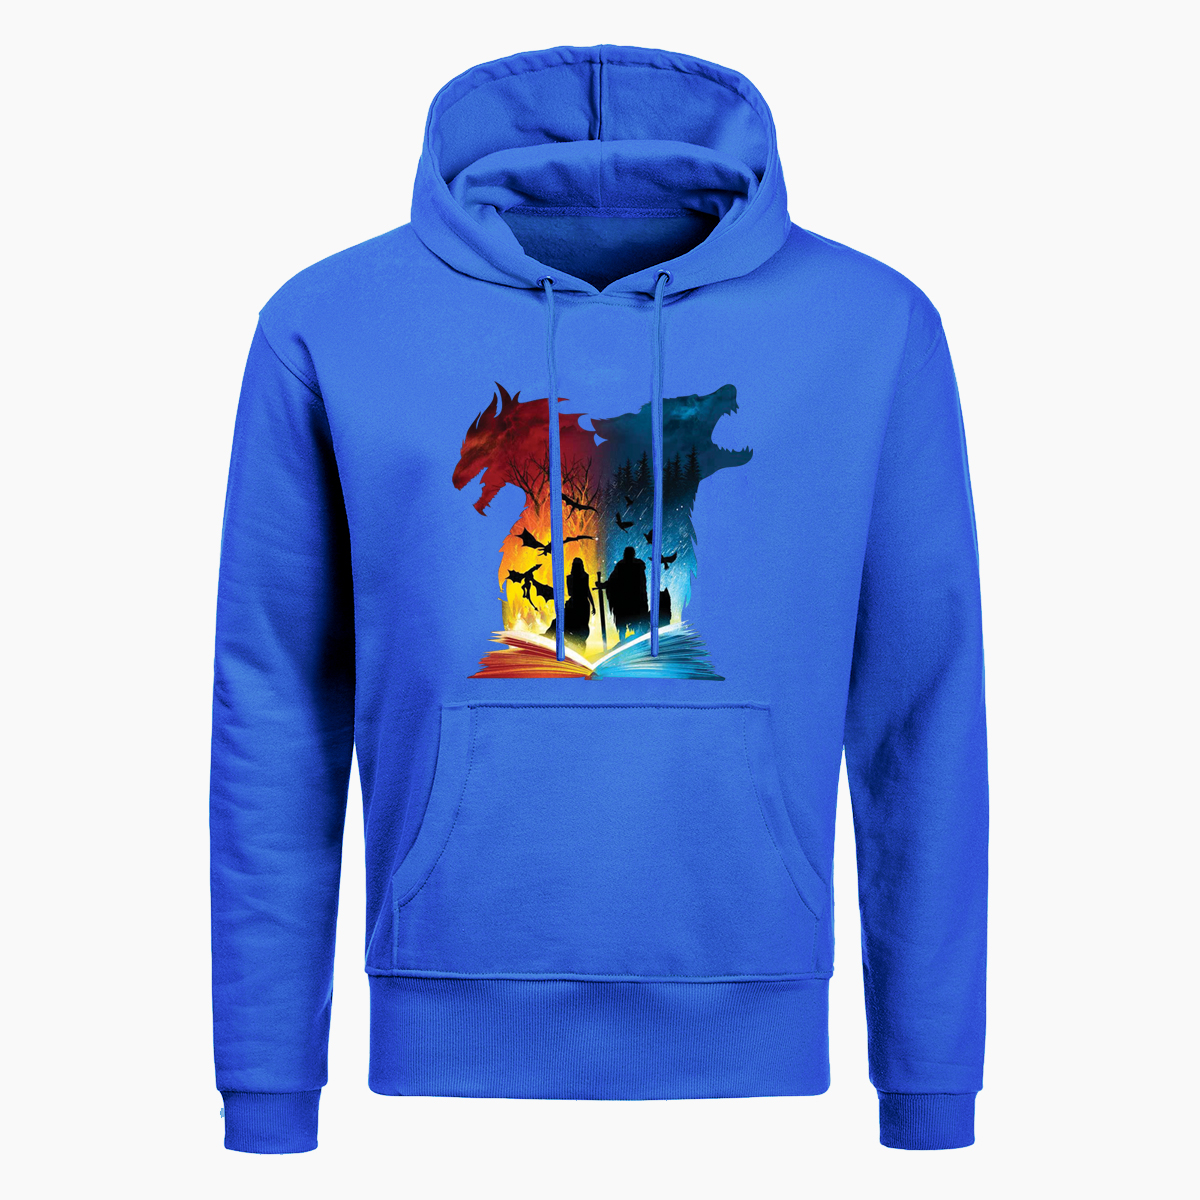 Butterfly and Books Mans Long Sleeve Hoodie Casual Pocket Hooded Sweatshirt